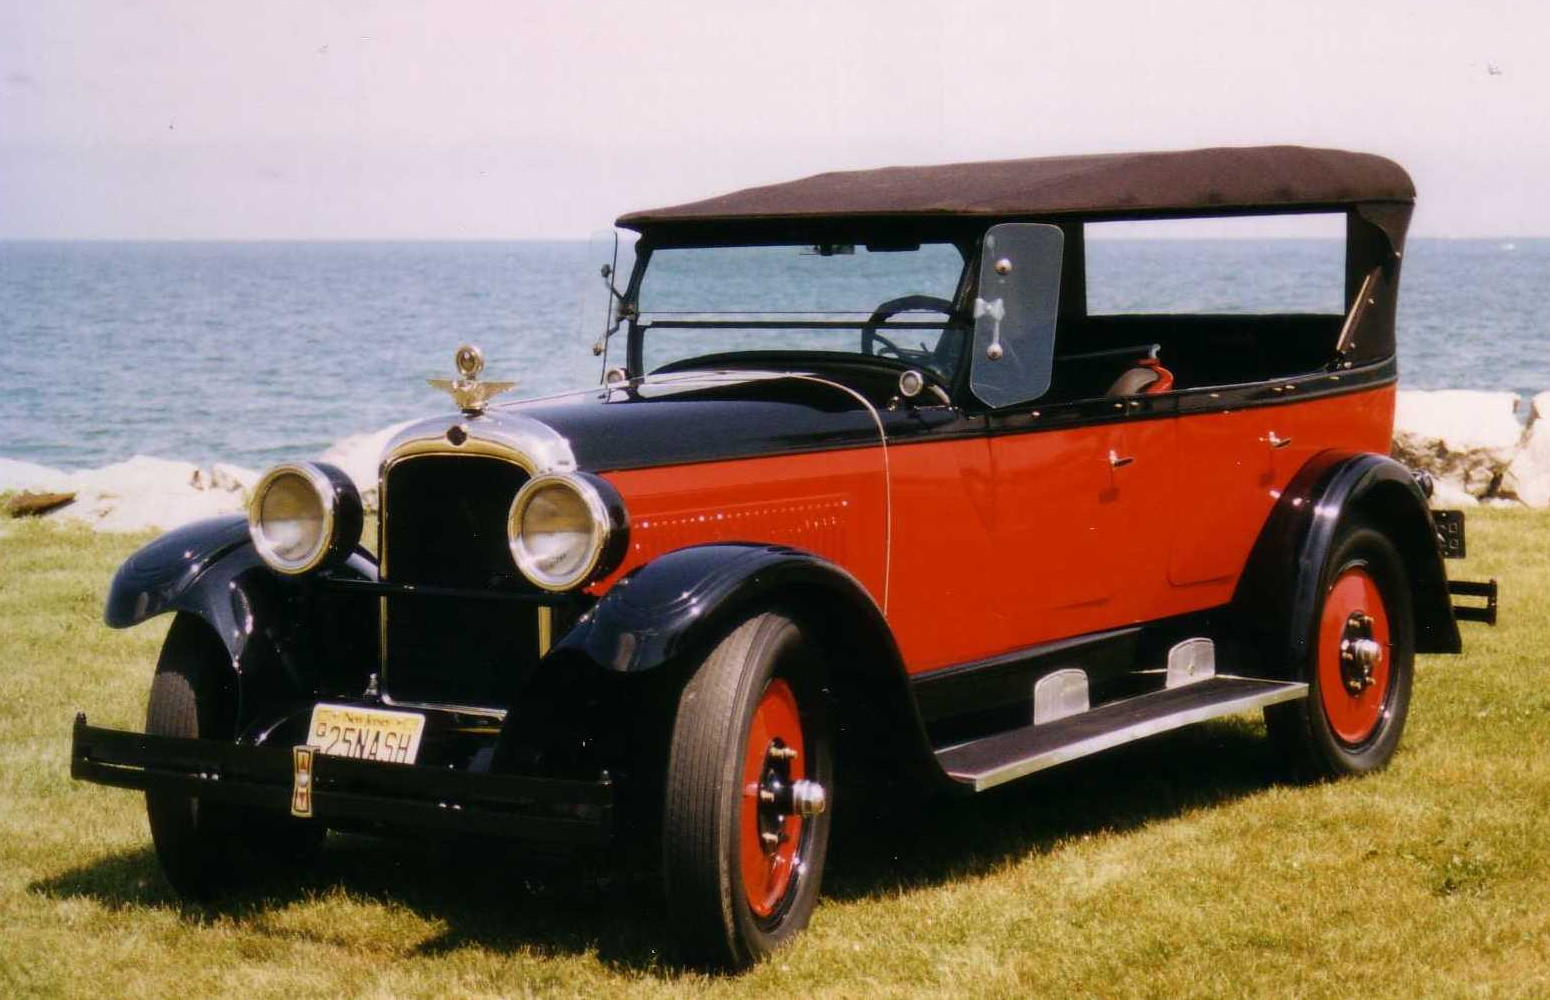 File:1925 Nash automobile.JPG - Wikipedia, the free encyclopedia